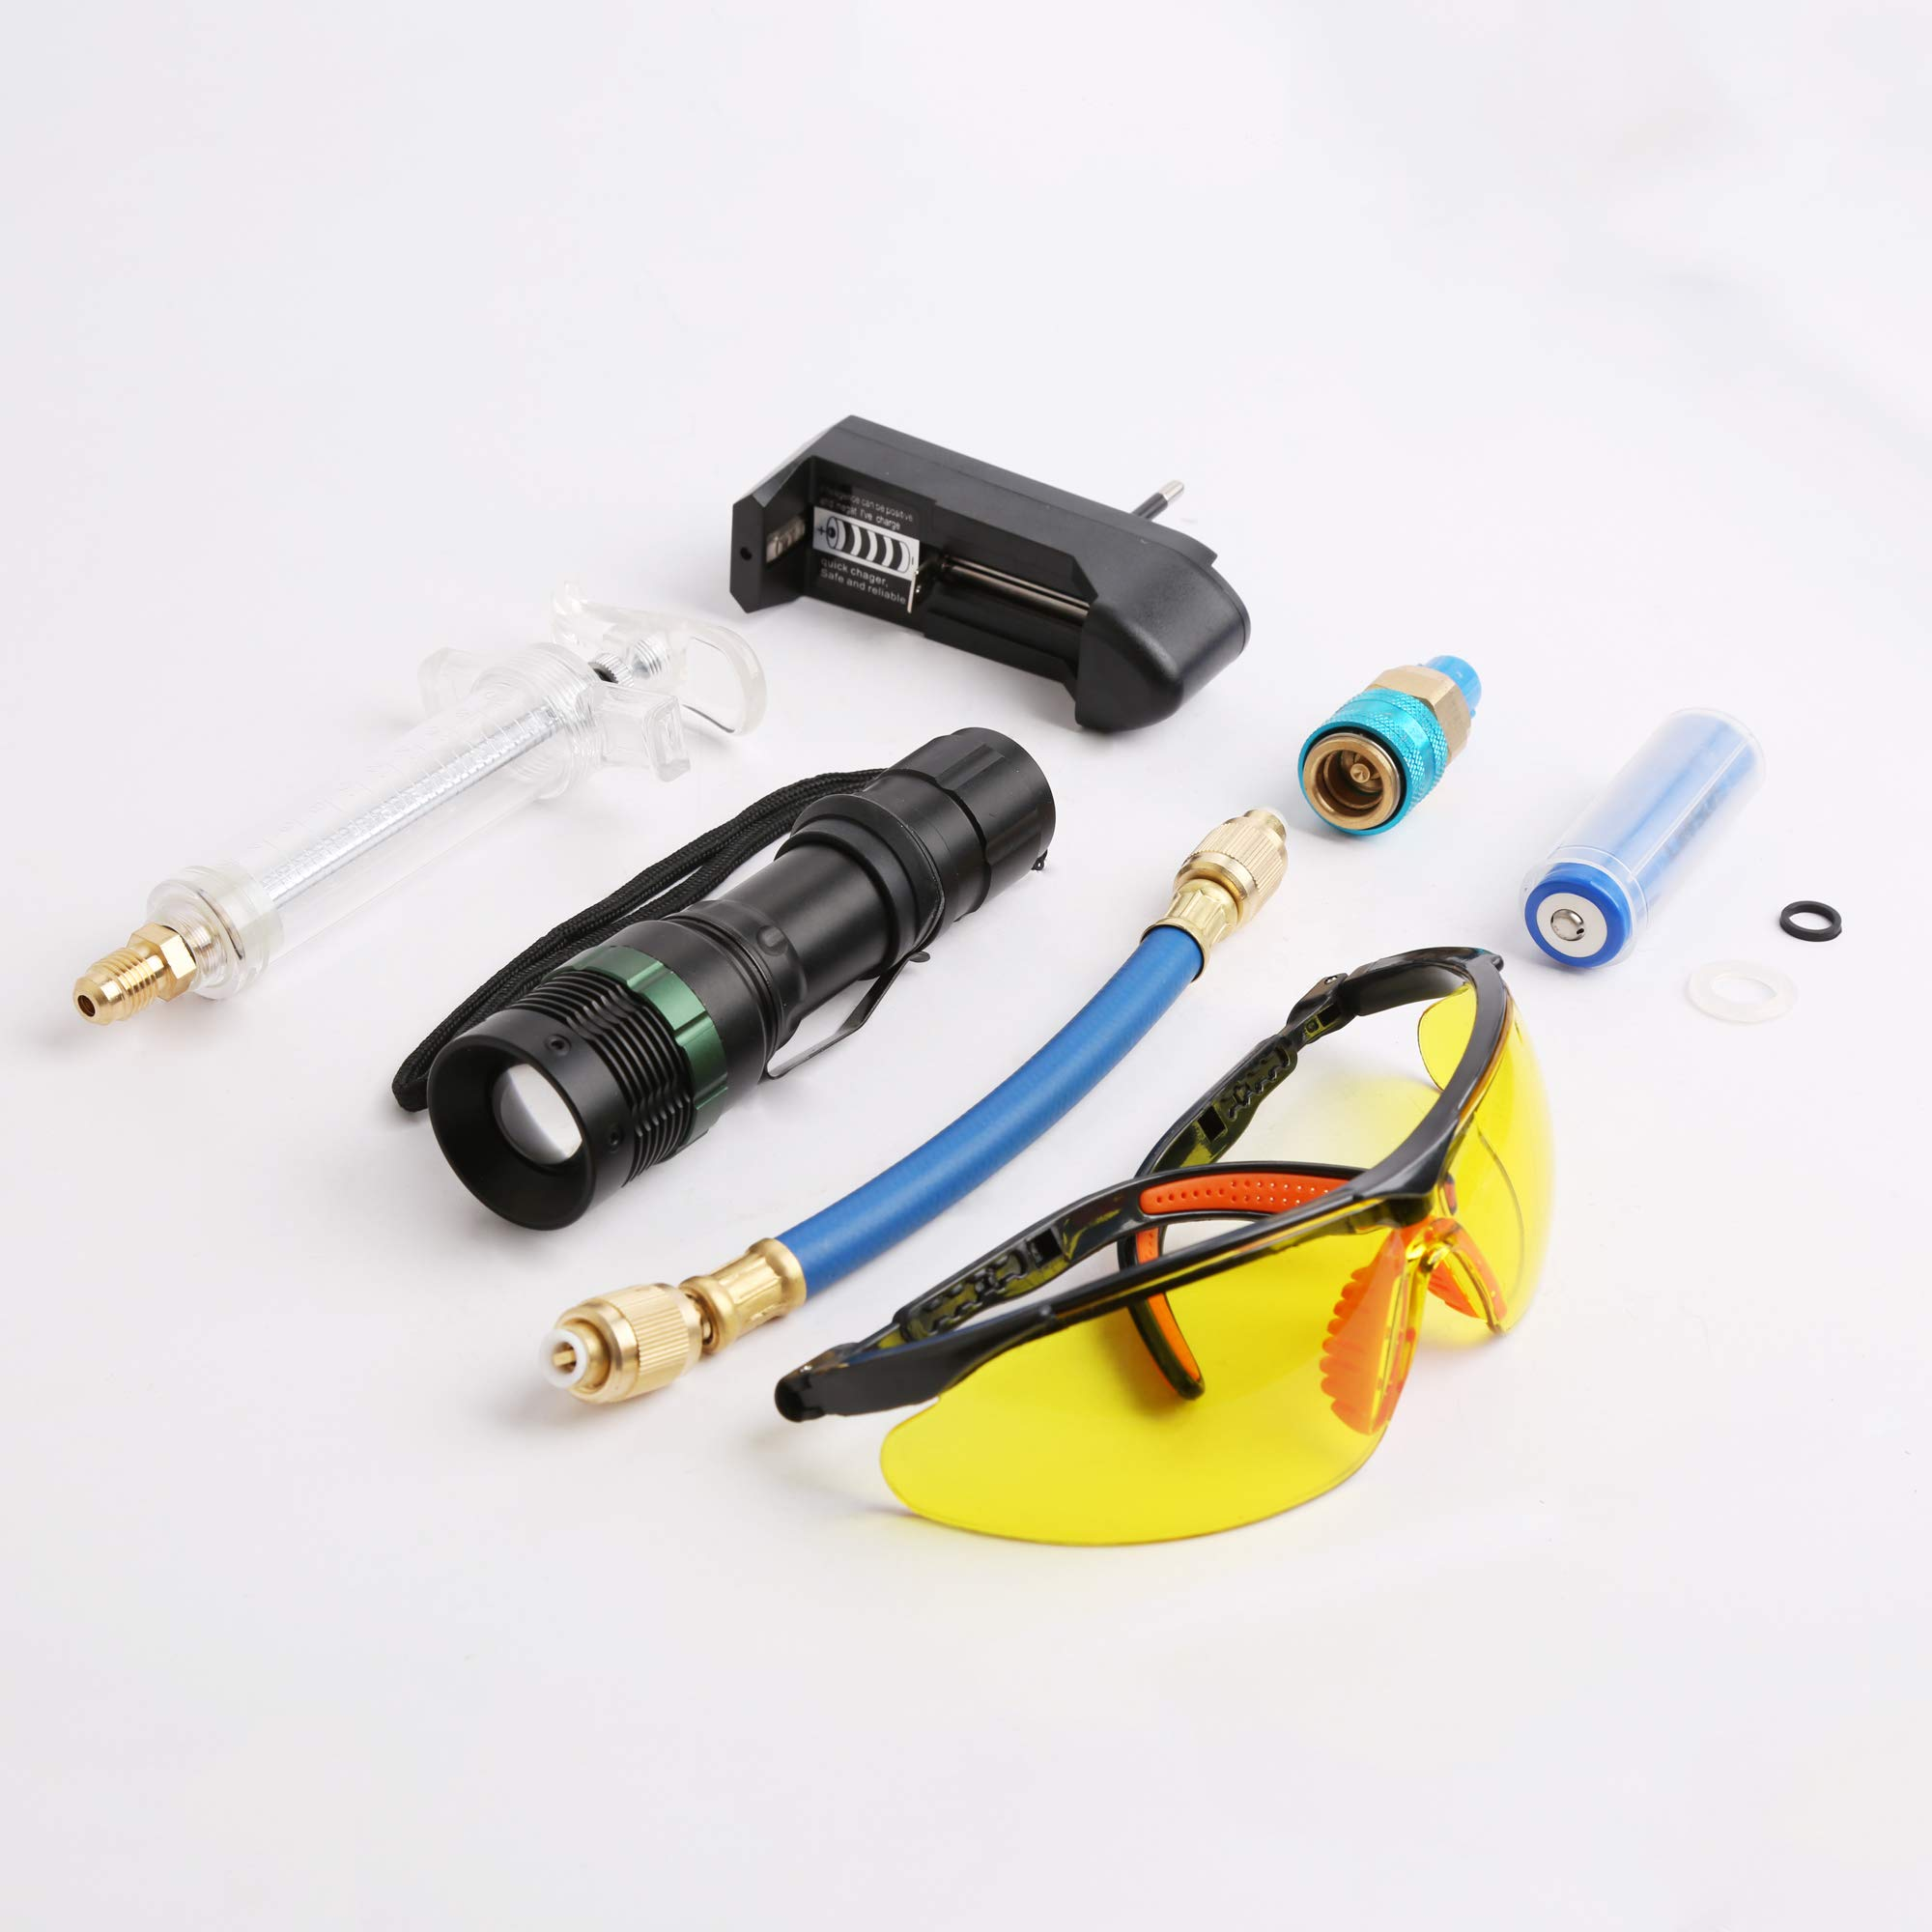 WINTOOLS 3W UV Leak Detector Led Lamp Set Rechargeable Battery Air Con Engine Gearbox Set by WINTOOLS (Image #3)